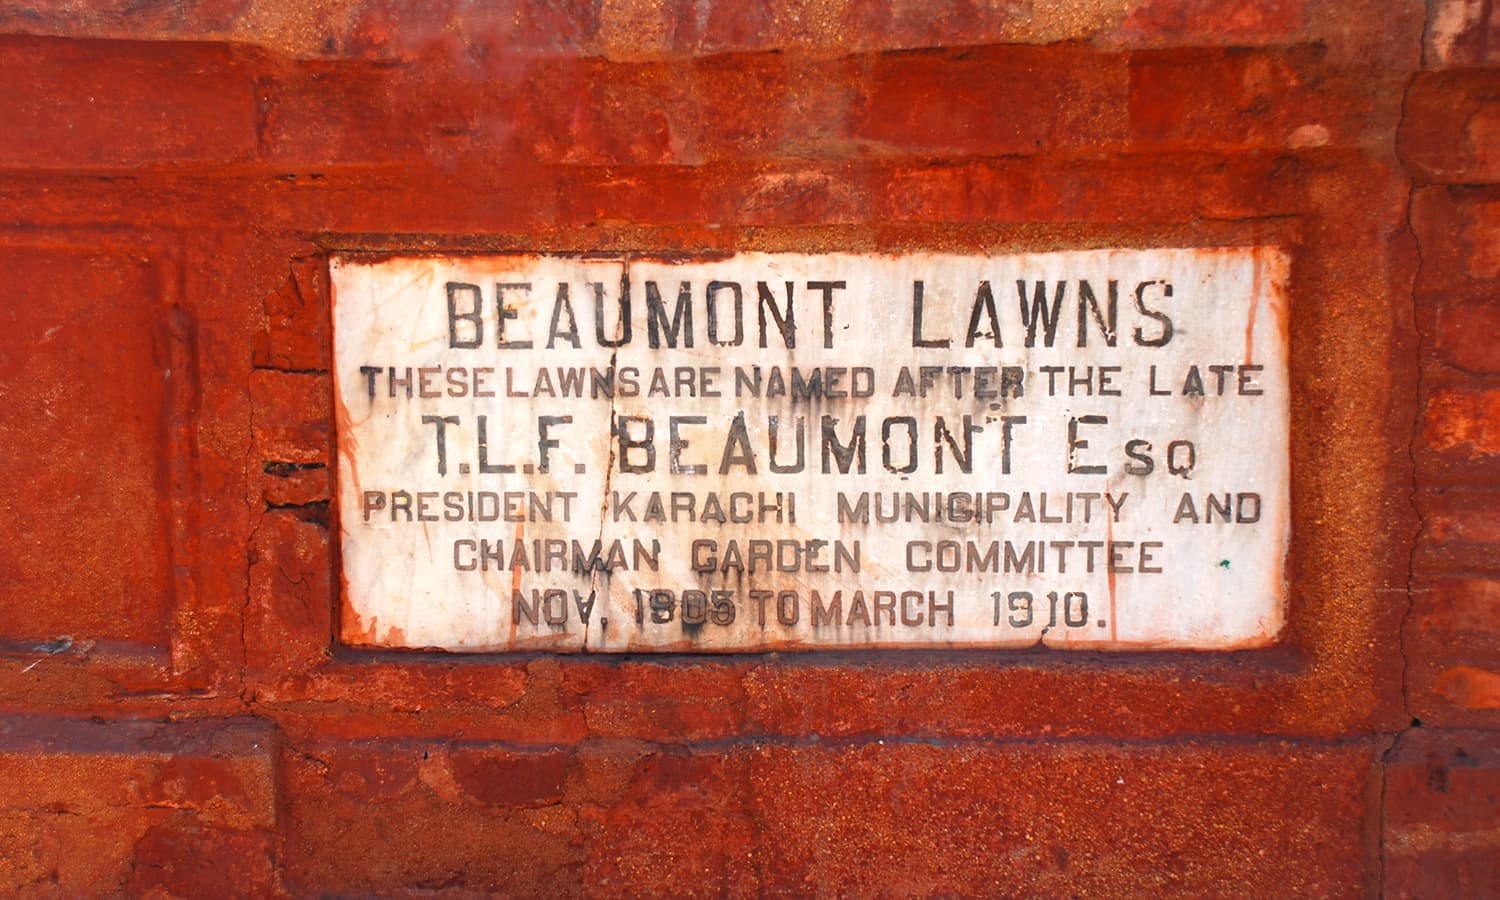 The lawns were named after the President of Karachi Municipality, T.L.F. Beaumont.